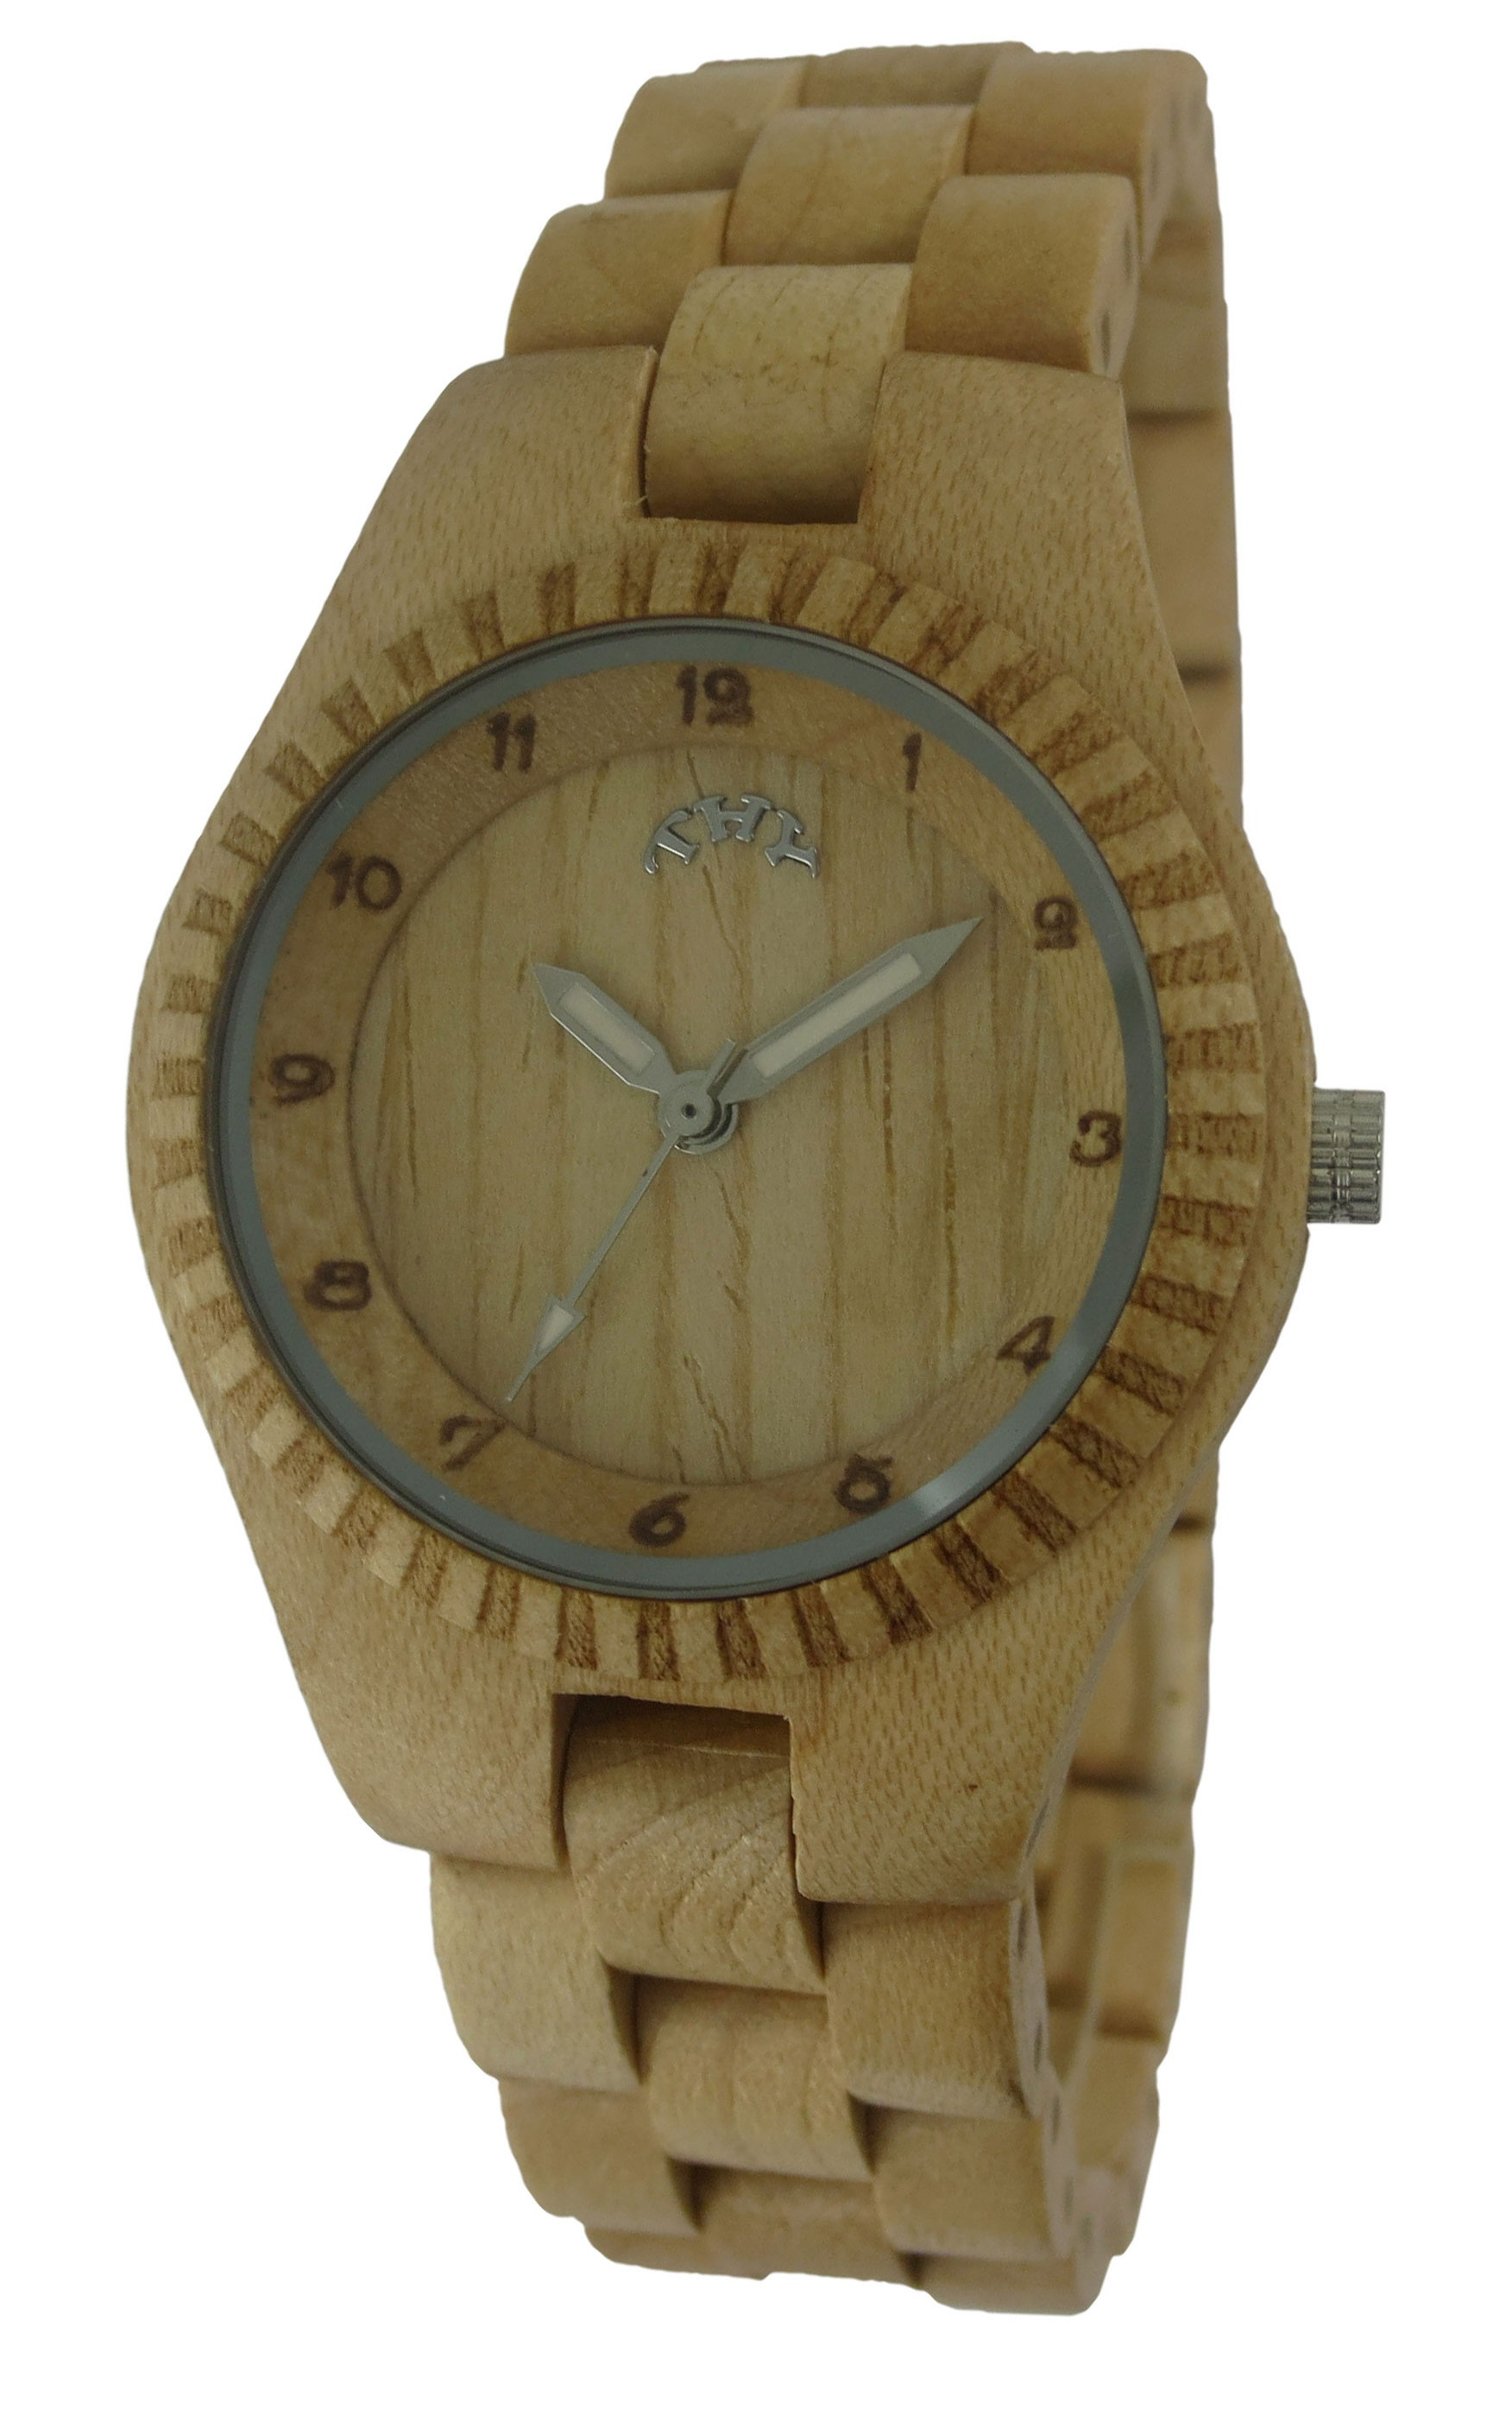 WoMens Yellow Round Yellow Dial Wooden Watches with 30 Mm Size W00010